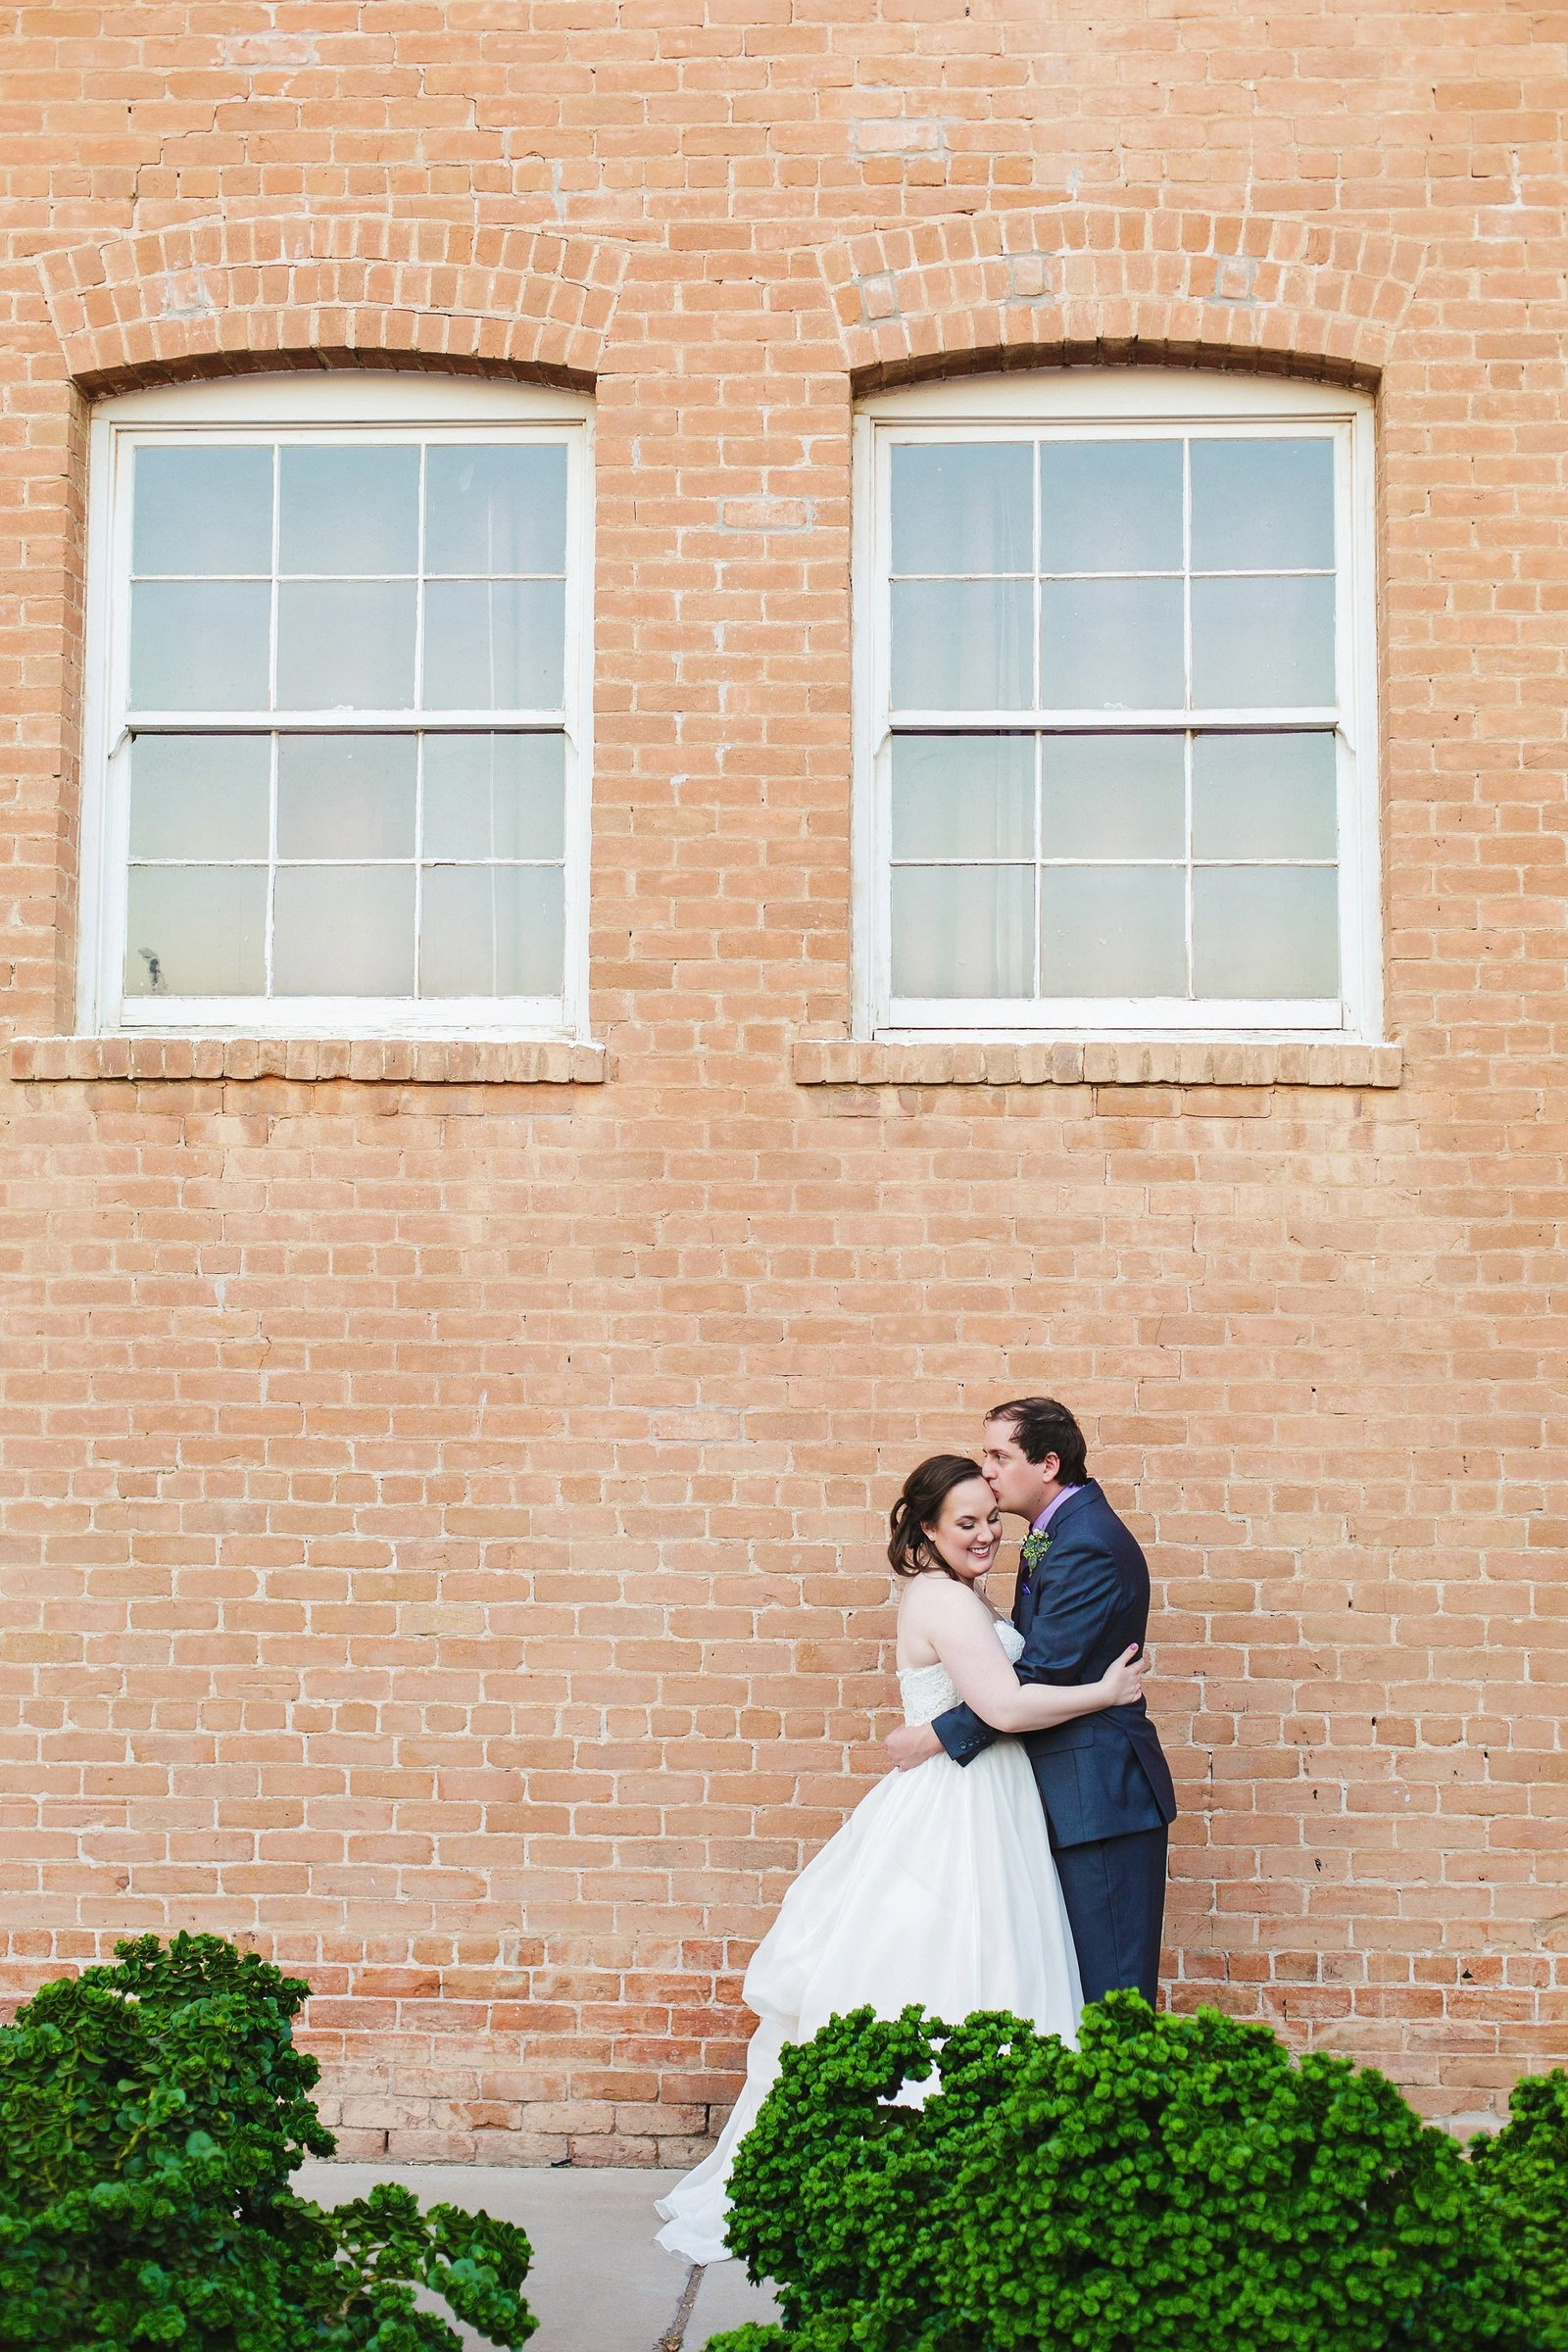 Bride + Groom Portraits Denver Colorado Springs CO Wedding Photographer Genevieve Hansen 016